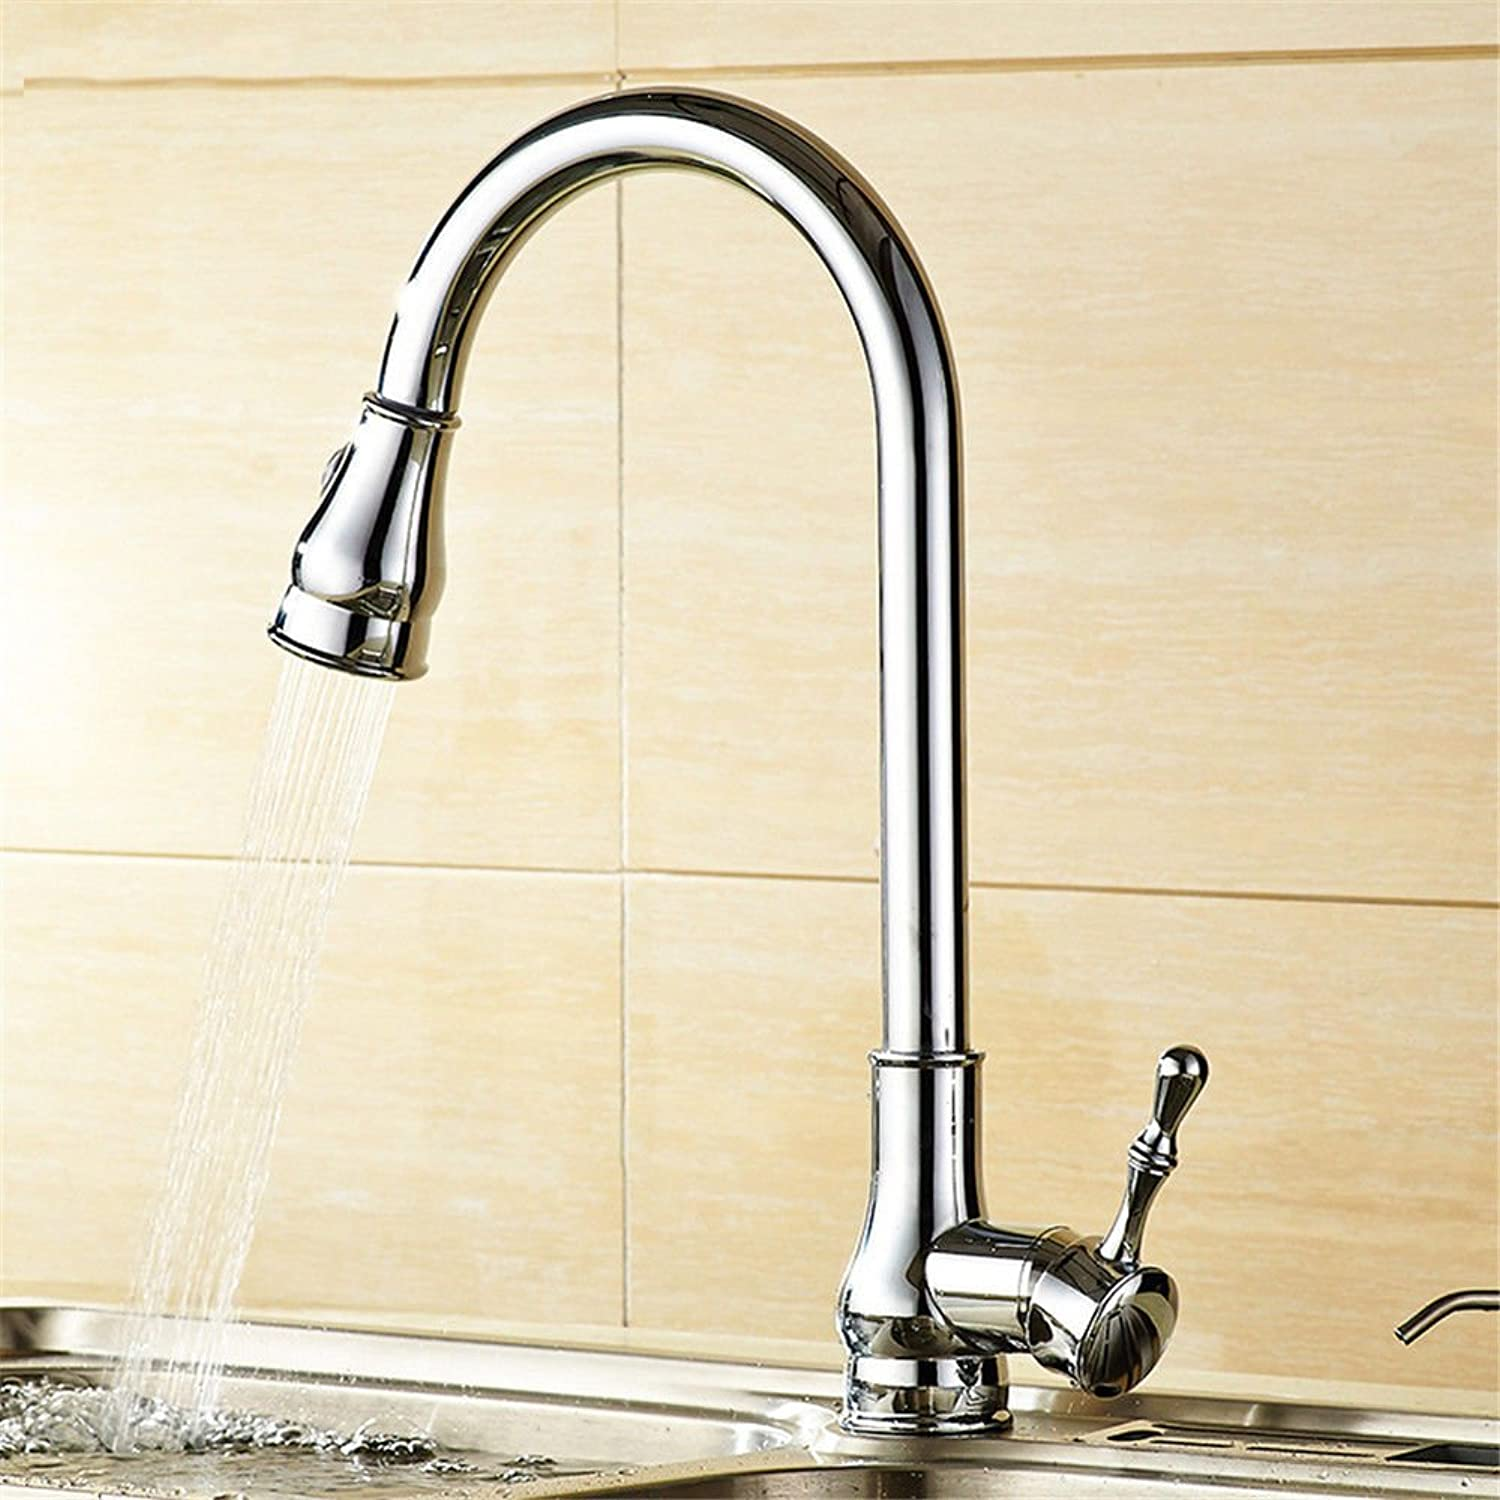 Gyps Faucet Single-Lever Washbasin Mixer Tap Black Antique Pull-Down Cable Sink Fittings Kitchen Full Copper Black and Cold Tap B Mixer Tap